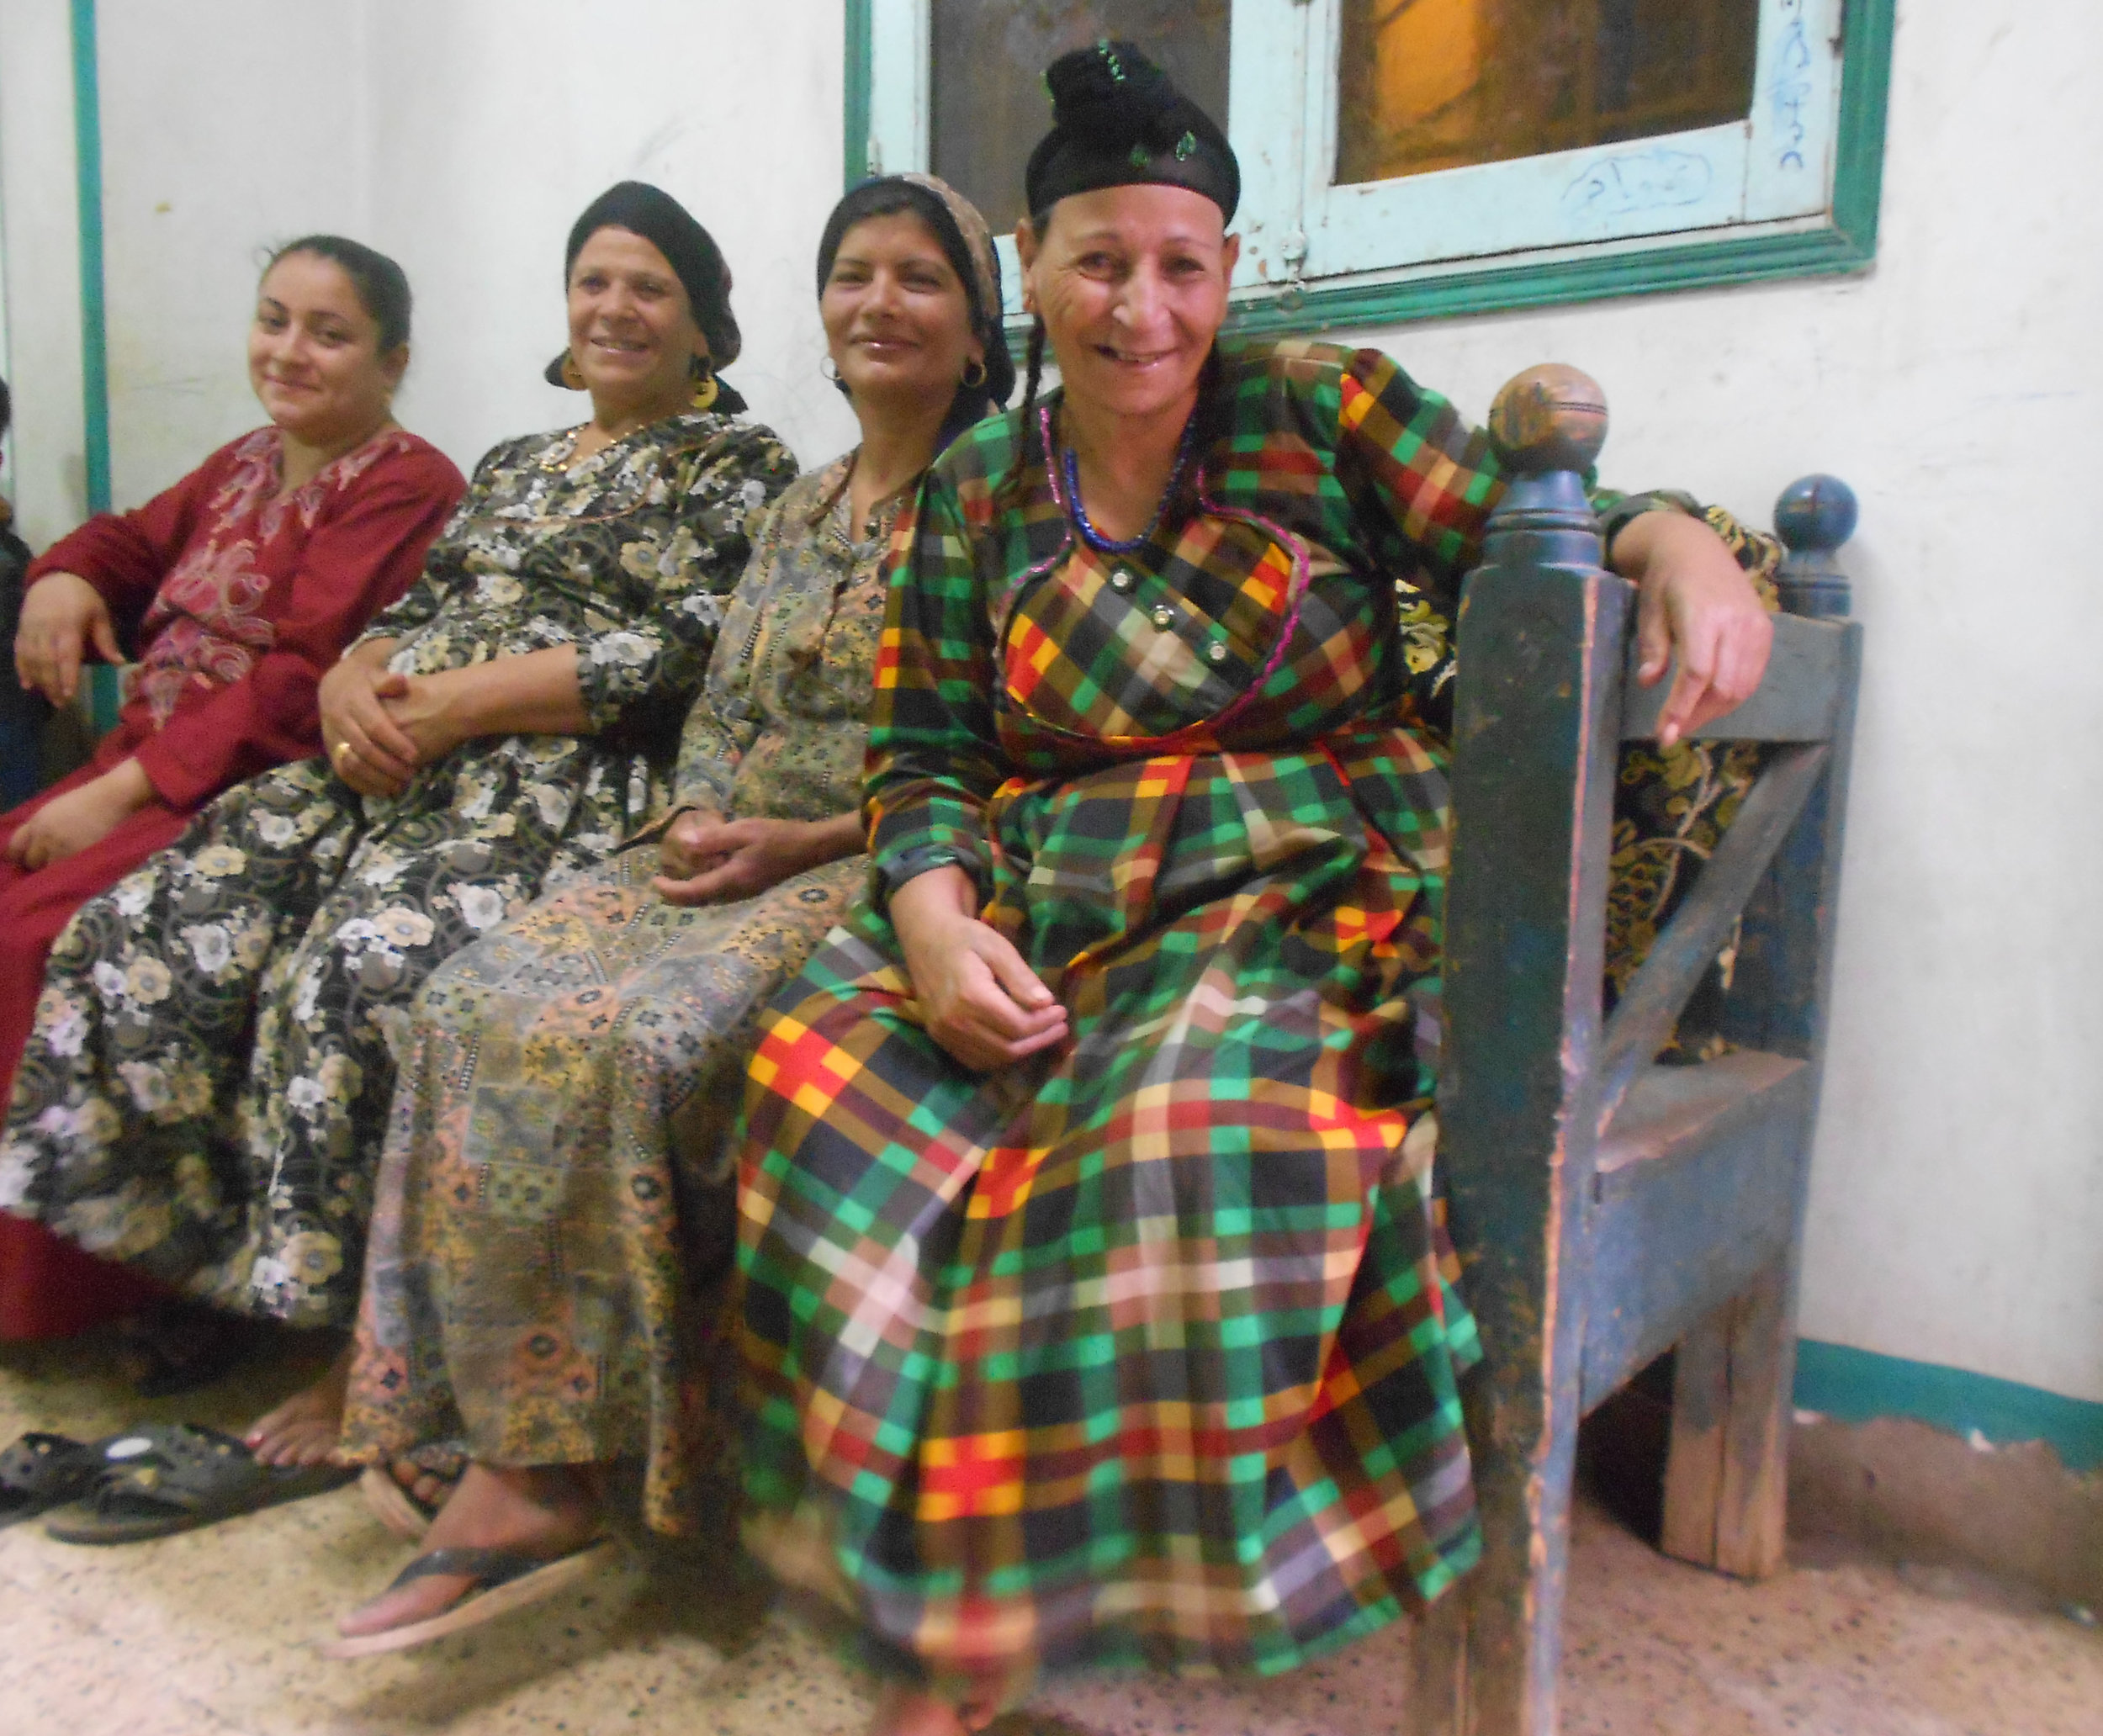 Three Egyptian mothers who have refused to circumcise their daughters and 67-year-old midwife Samiha Saeed (on the far right), who stopped performing FGM surgeries after attending some awareness campaigns by Egypt's non-governmental organisations in the Upper Egyptian governorate of Minya. Photo:Menna A. Farouk